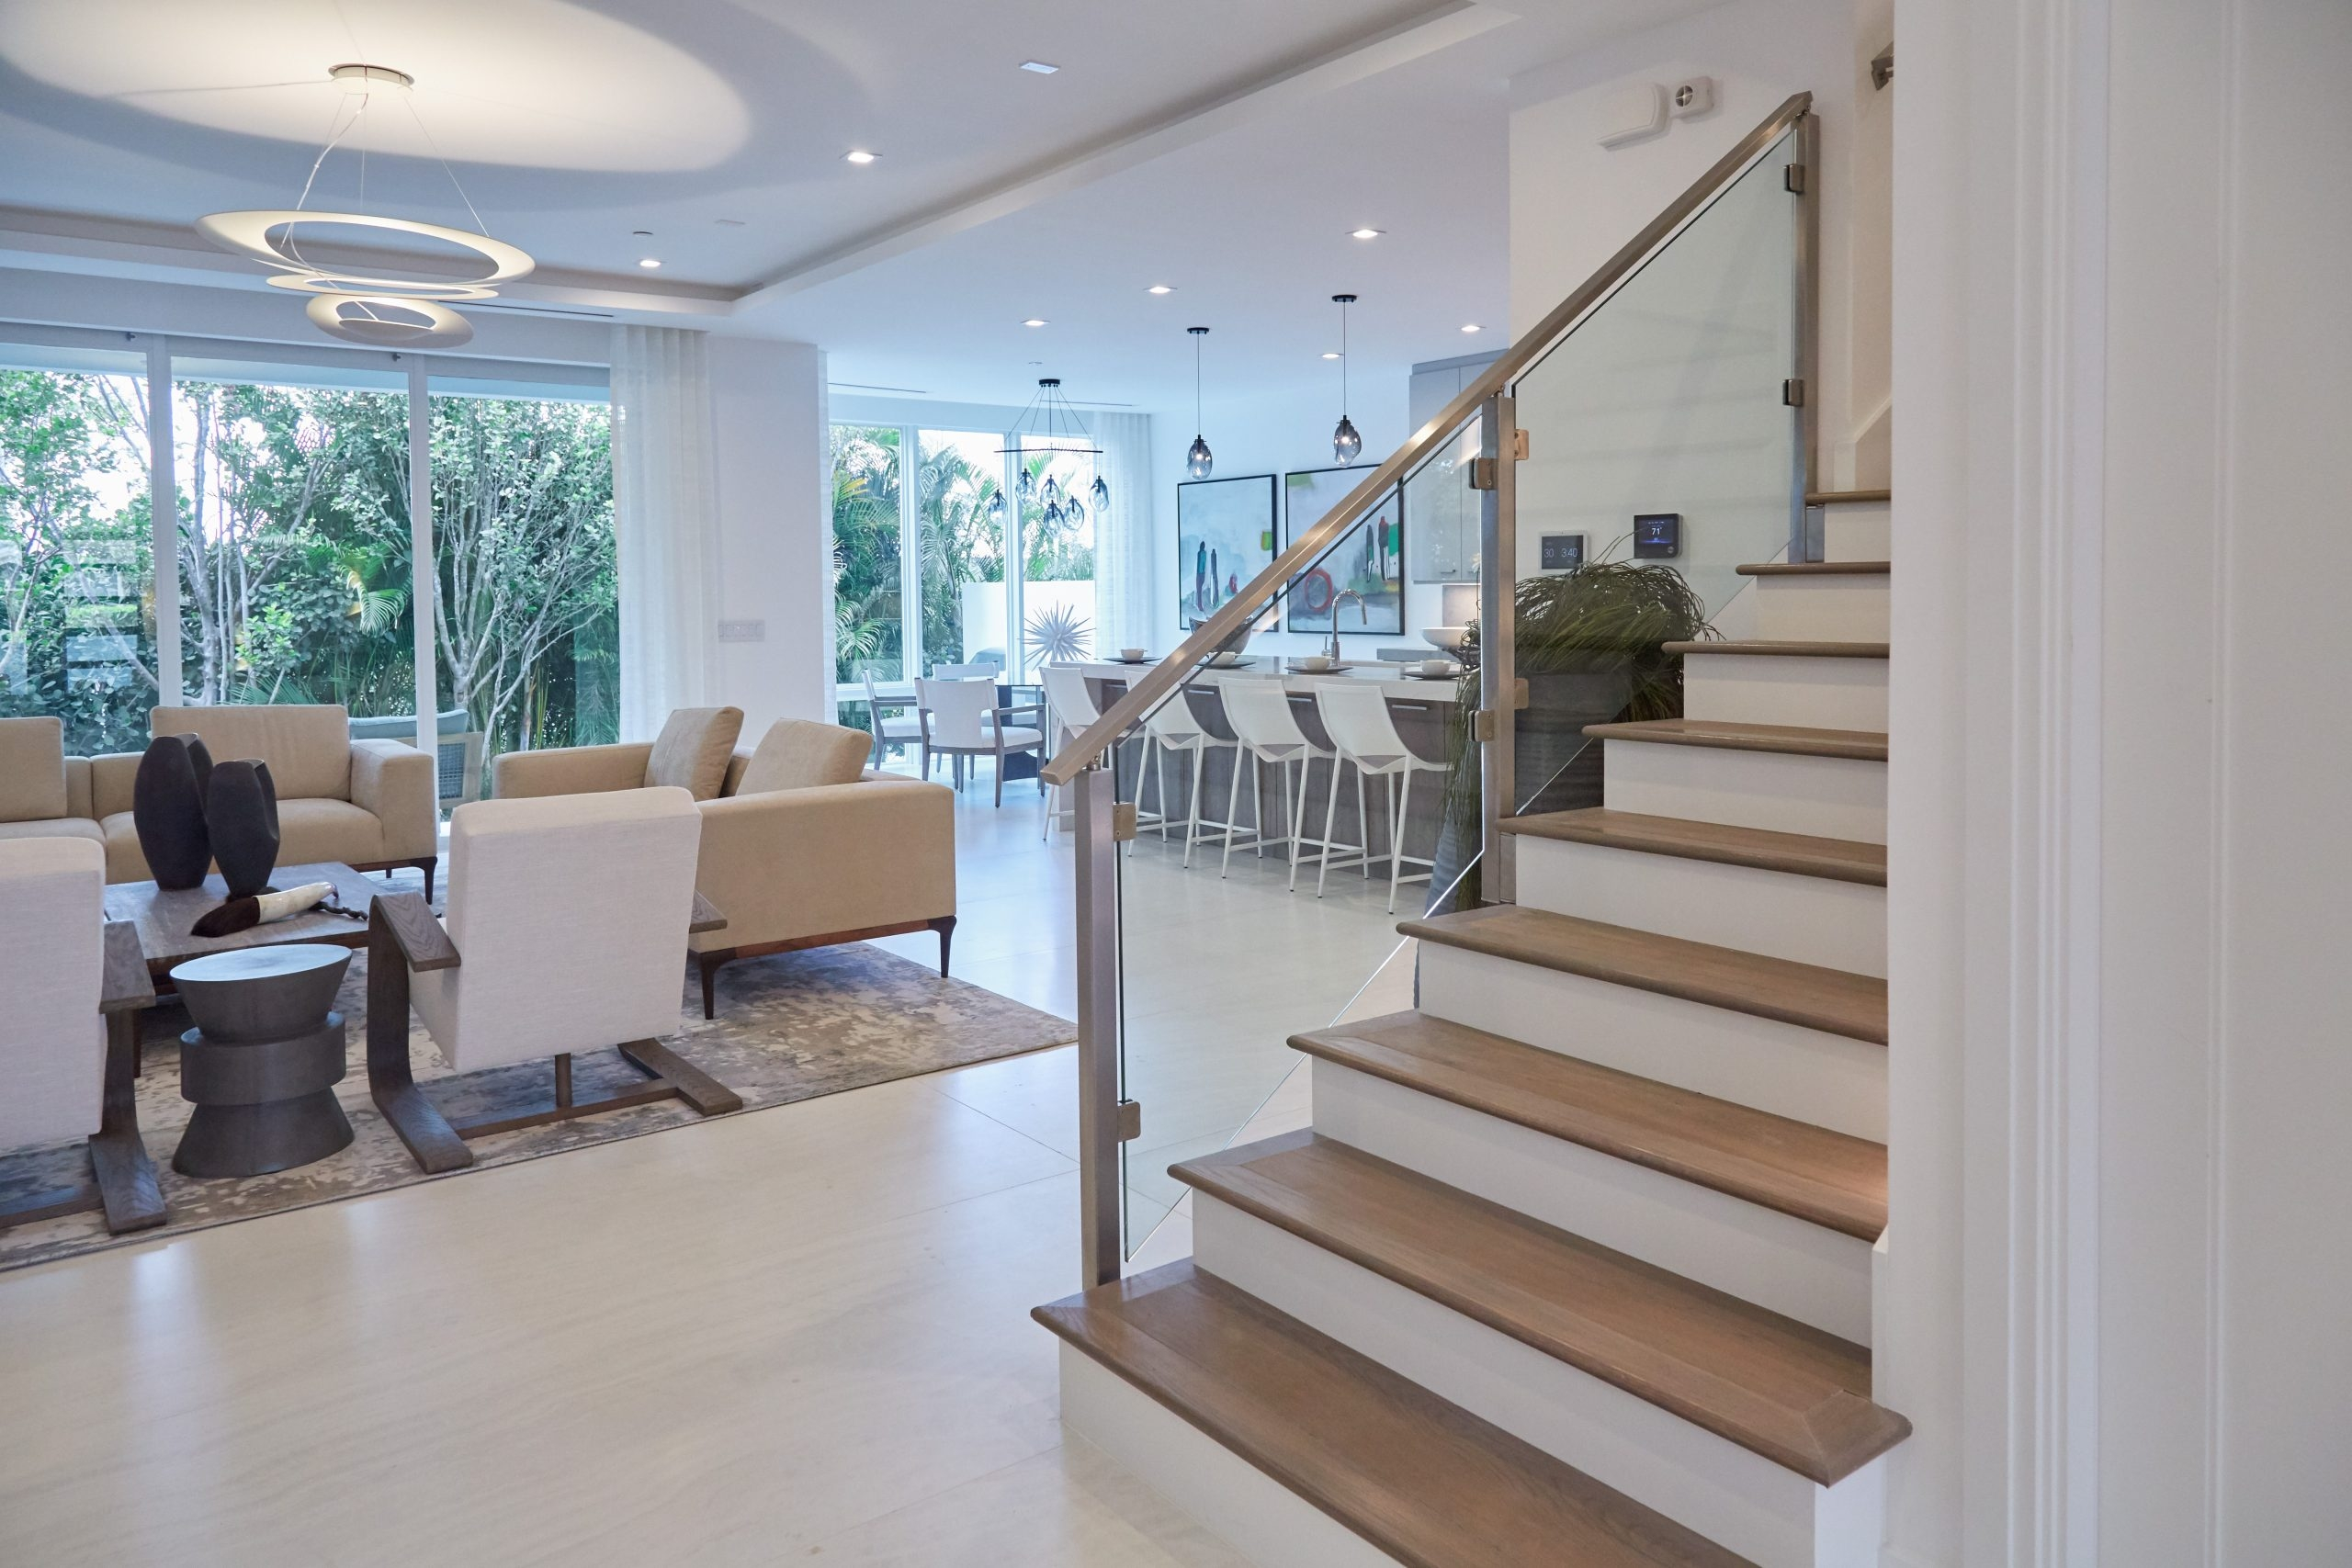 Contemporary Home Glass Staircase   Glass Stair Railings Interior   Indoor   Architectural Modern Wood Stair   Stair Banister   Stainless Steel   Glass Balustrade